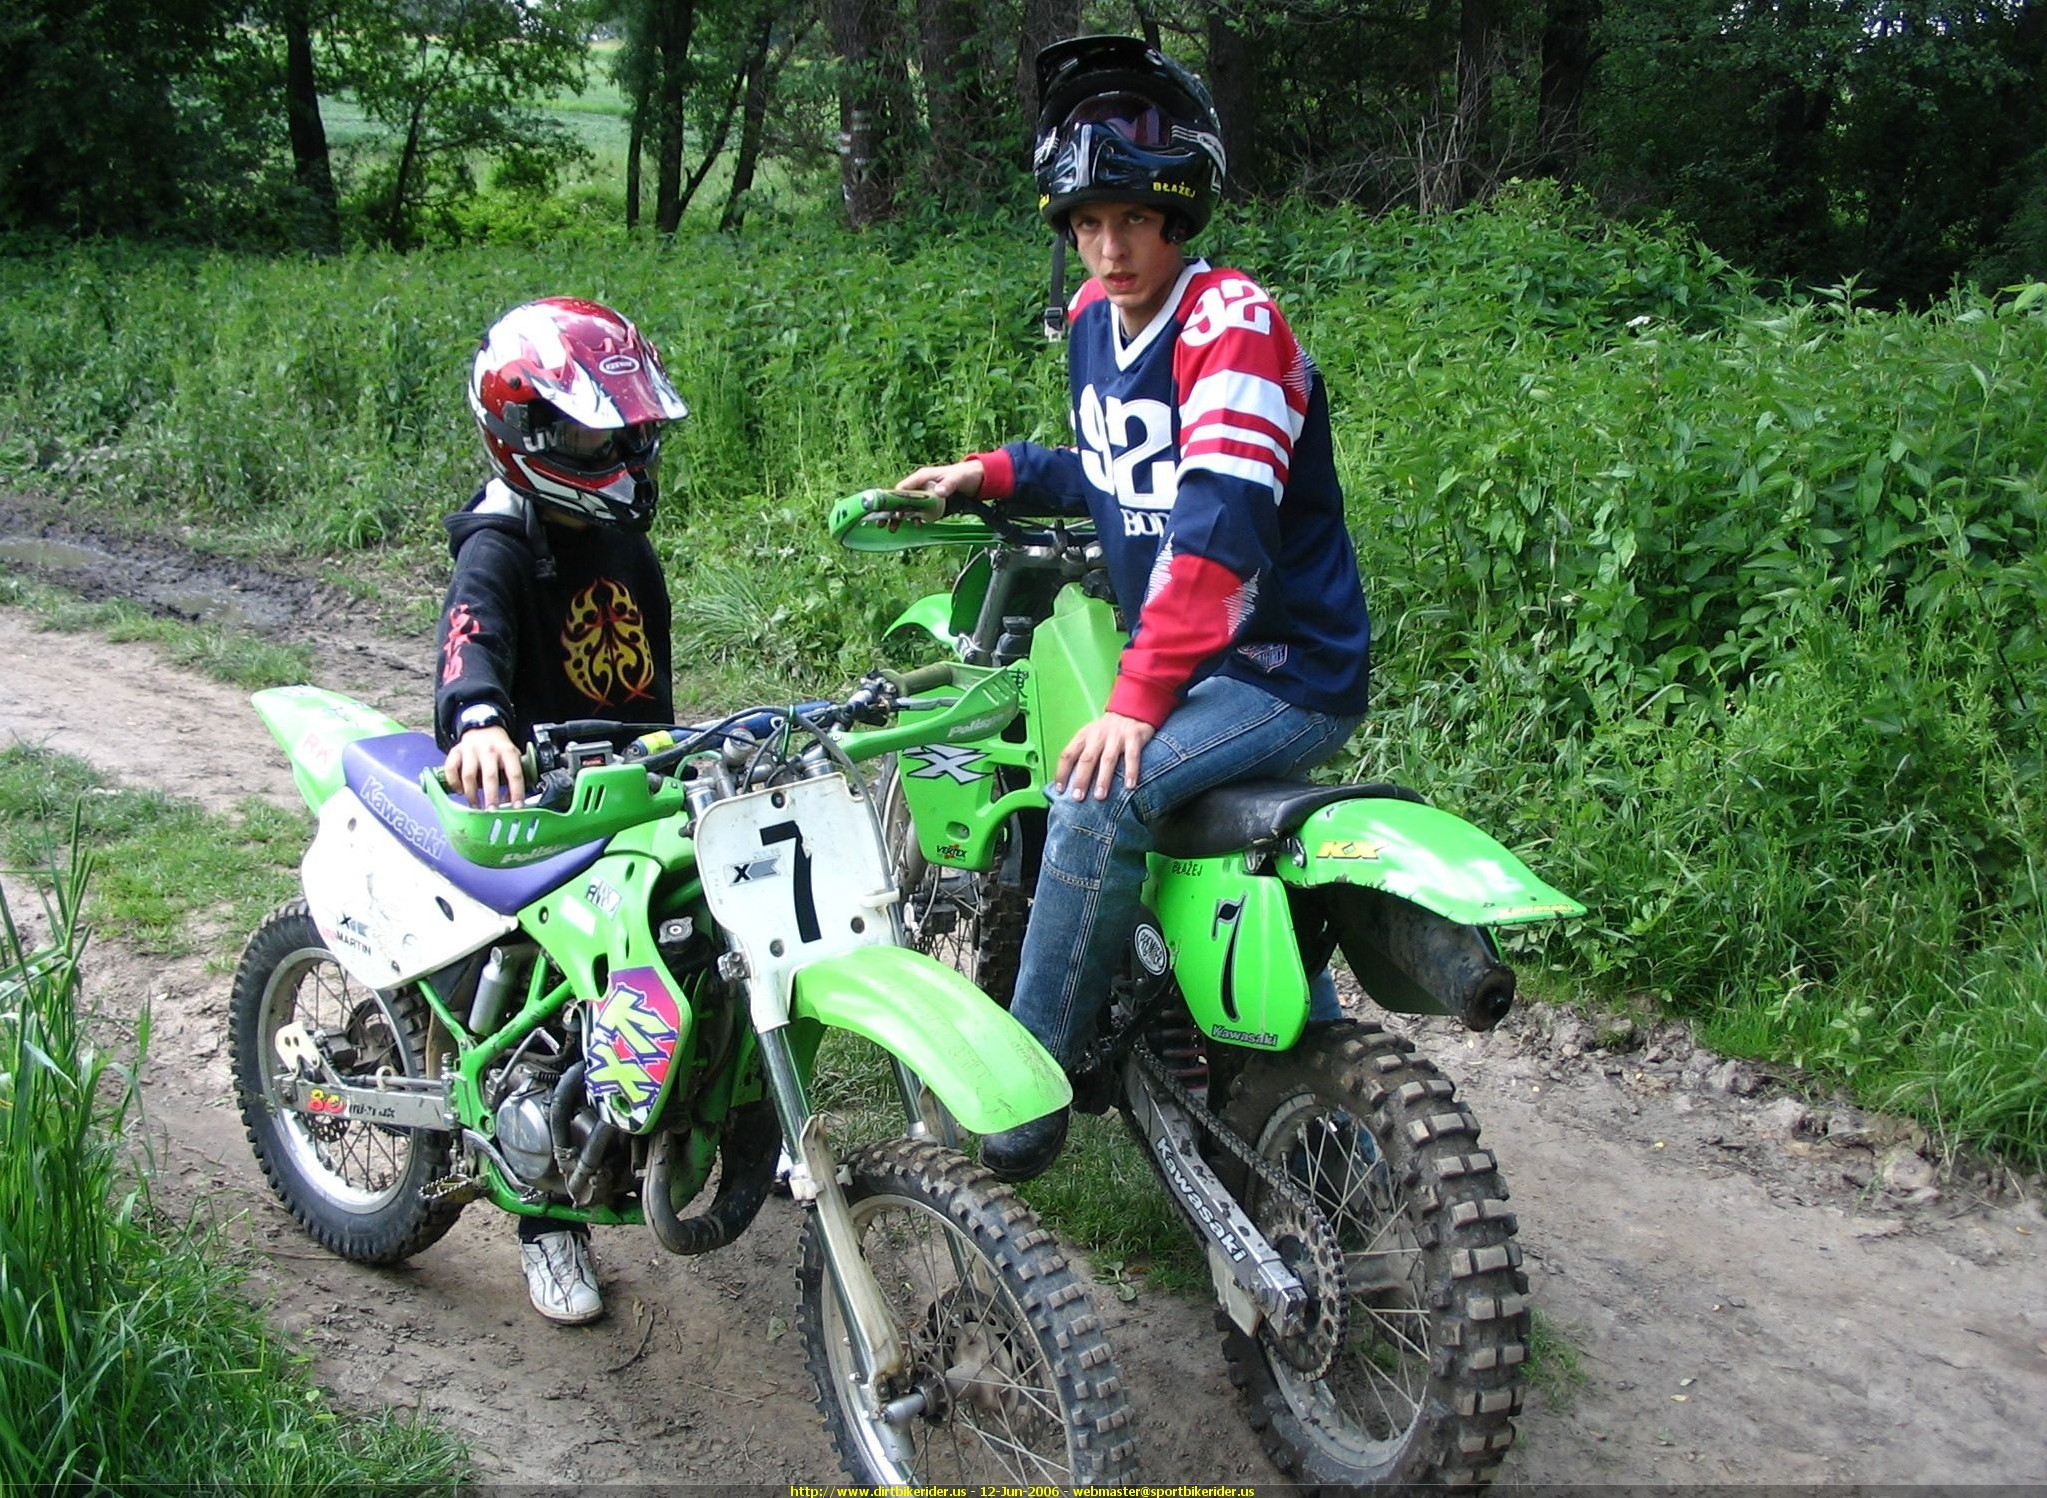 Stupendous 1990 Kawasaki Kx 125 Pics Specs And Information Pabps2019 Chair Design Images Pabps2019Com